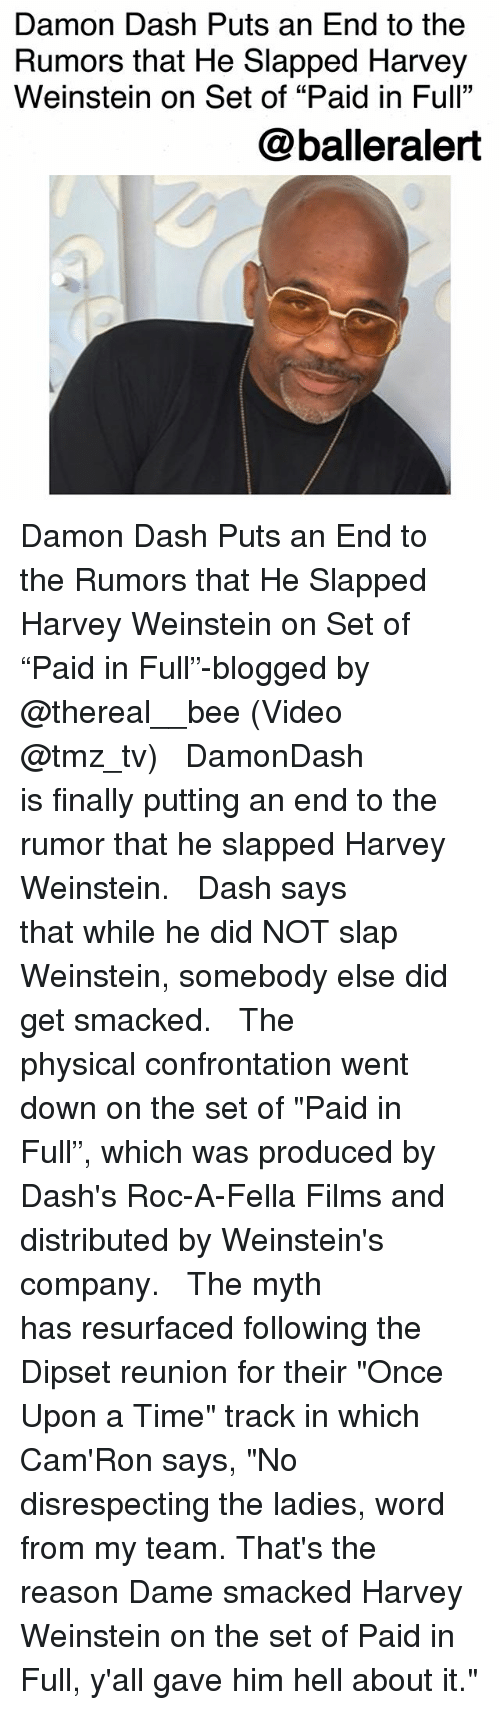 "Dipset, Memes, and Once Upon a Time: Damon Dash Puts an End to the  Rumors that He Slapped Harvey  Weinstein on Set of ""Paid in Full""  @balleralert Damon Dash Puts an End to the Rumors that He Slapped Harvey Weinstein on Set of ""Paid in Full""-blogged by @thereal__bee (Video @tmz_tv) ⠀⠀⠀⠀⠀⠀⠀⠀⠀ ⠀⠀ DamonDash is finally putting an end to the rumor that he slapped Harvey Weinstein. ⠀⠀⠀⠀⠀⠀⠀⠀⠀ ⠀⠀ Dash says that while he did NOT slap Weinstein, somebody else did get smacked. ⠀⠀⠀⠀⠀⠀⠀⠀⠀ ⠀⠀ The physical confrontation went down on the set of ""Paid in Full"", which was produced by Dash's Roc-A-Fella Films and distributed by Weinstein's company. ⠀⠀⠀⠀⠀⠀⠀⠀⠀ ⠀⠀ The myth has resurfaced following the Dipset reunion for their ""Once Upon a Time"" track in which Cam'Ron says, ""No disrespecting the ladies, word from my team. That's the reason Dame smacked Harvey Weinstein on the set of Paid in Full, y'all gave him hell about it."""